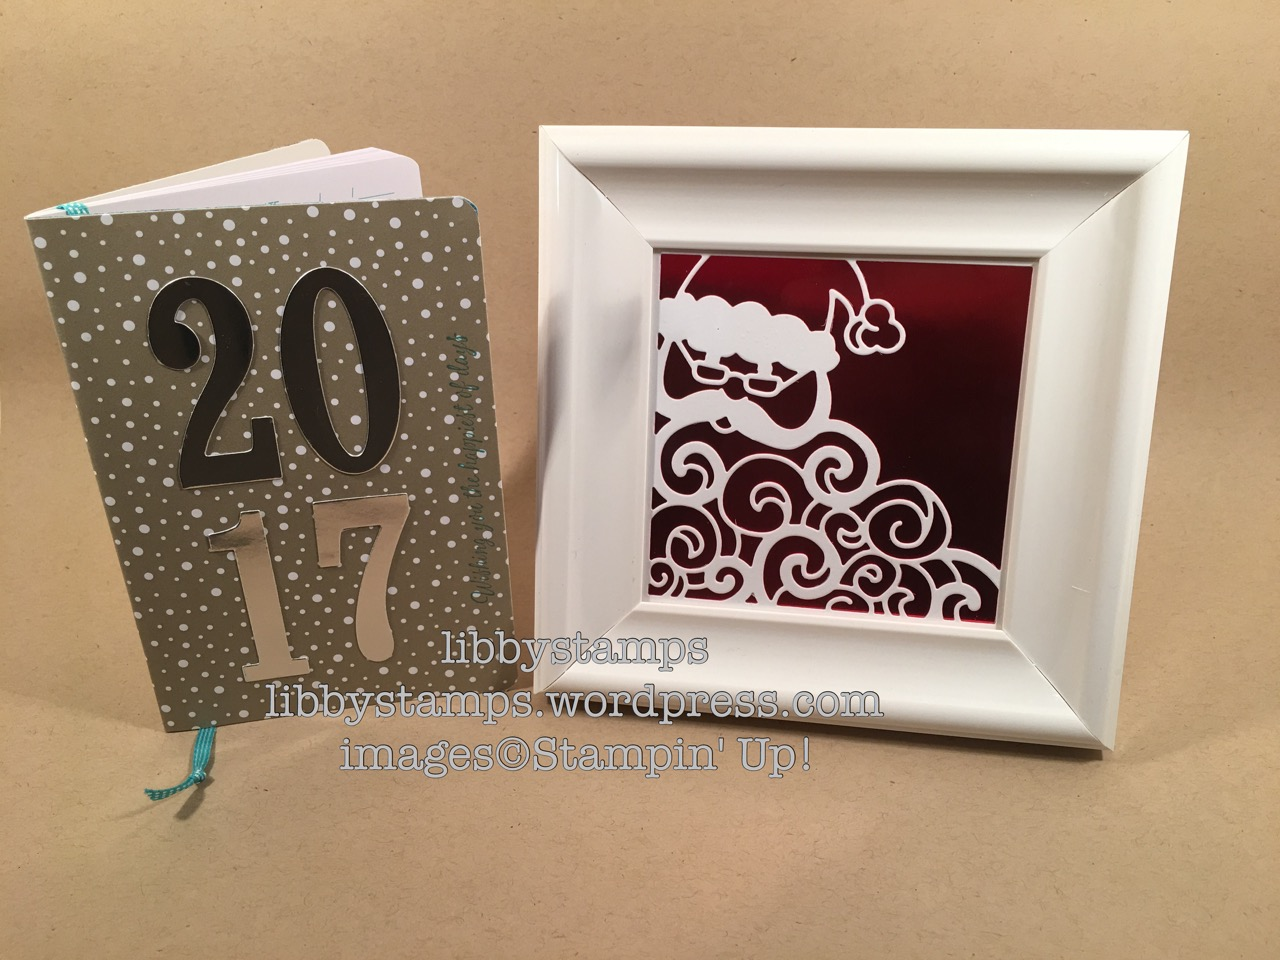 libbystamps, stampin up, Red Foil, Silver Foil, Detailed Santa Thinlits, Large Numbers Framelits, Frosted Medallion, Candy Cane Lane DSP, date book